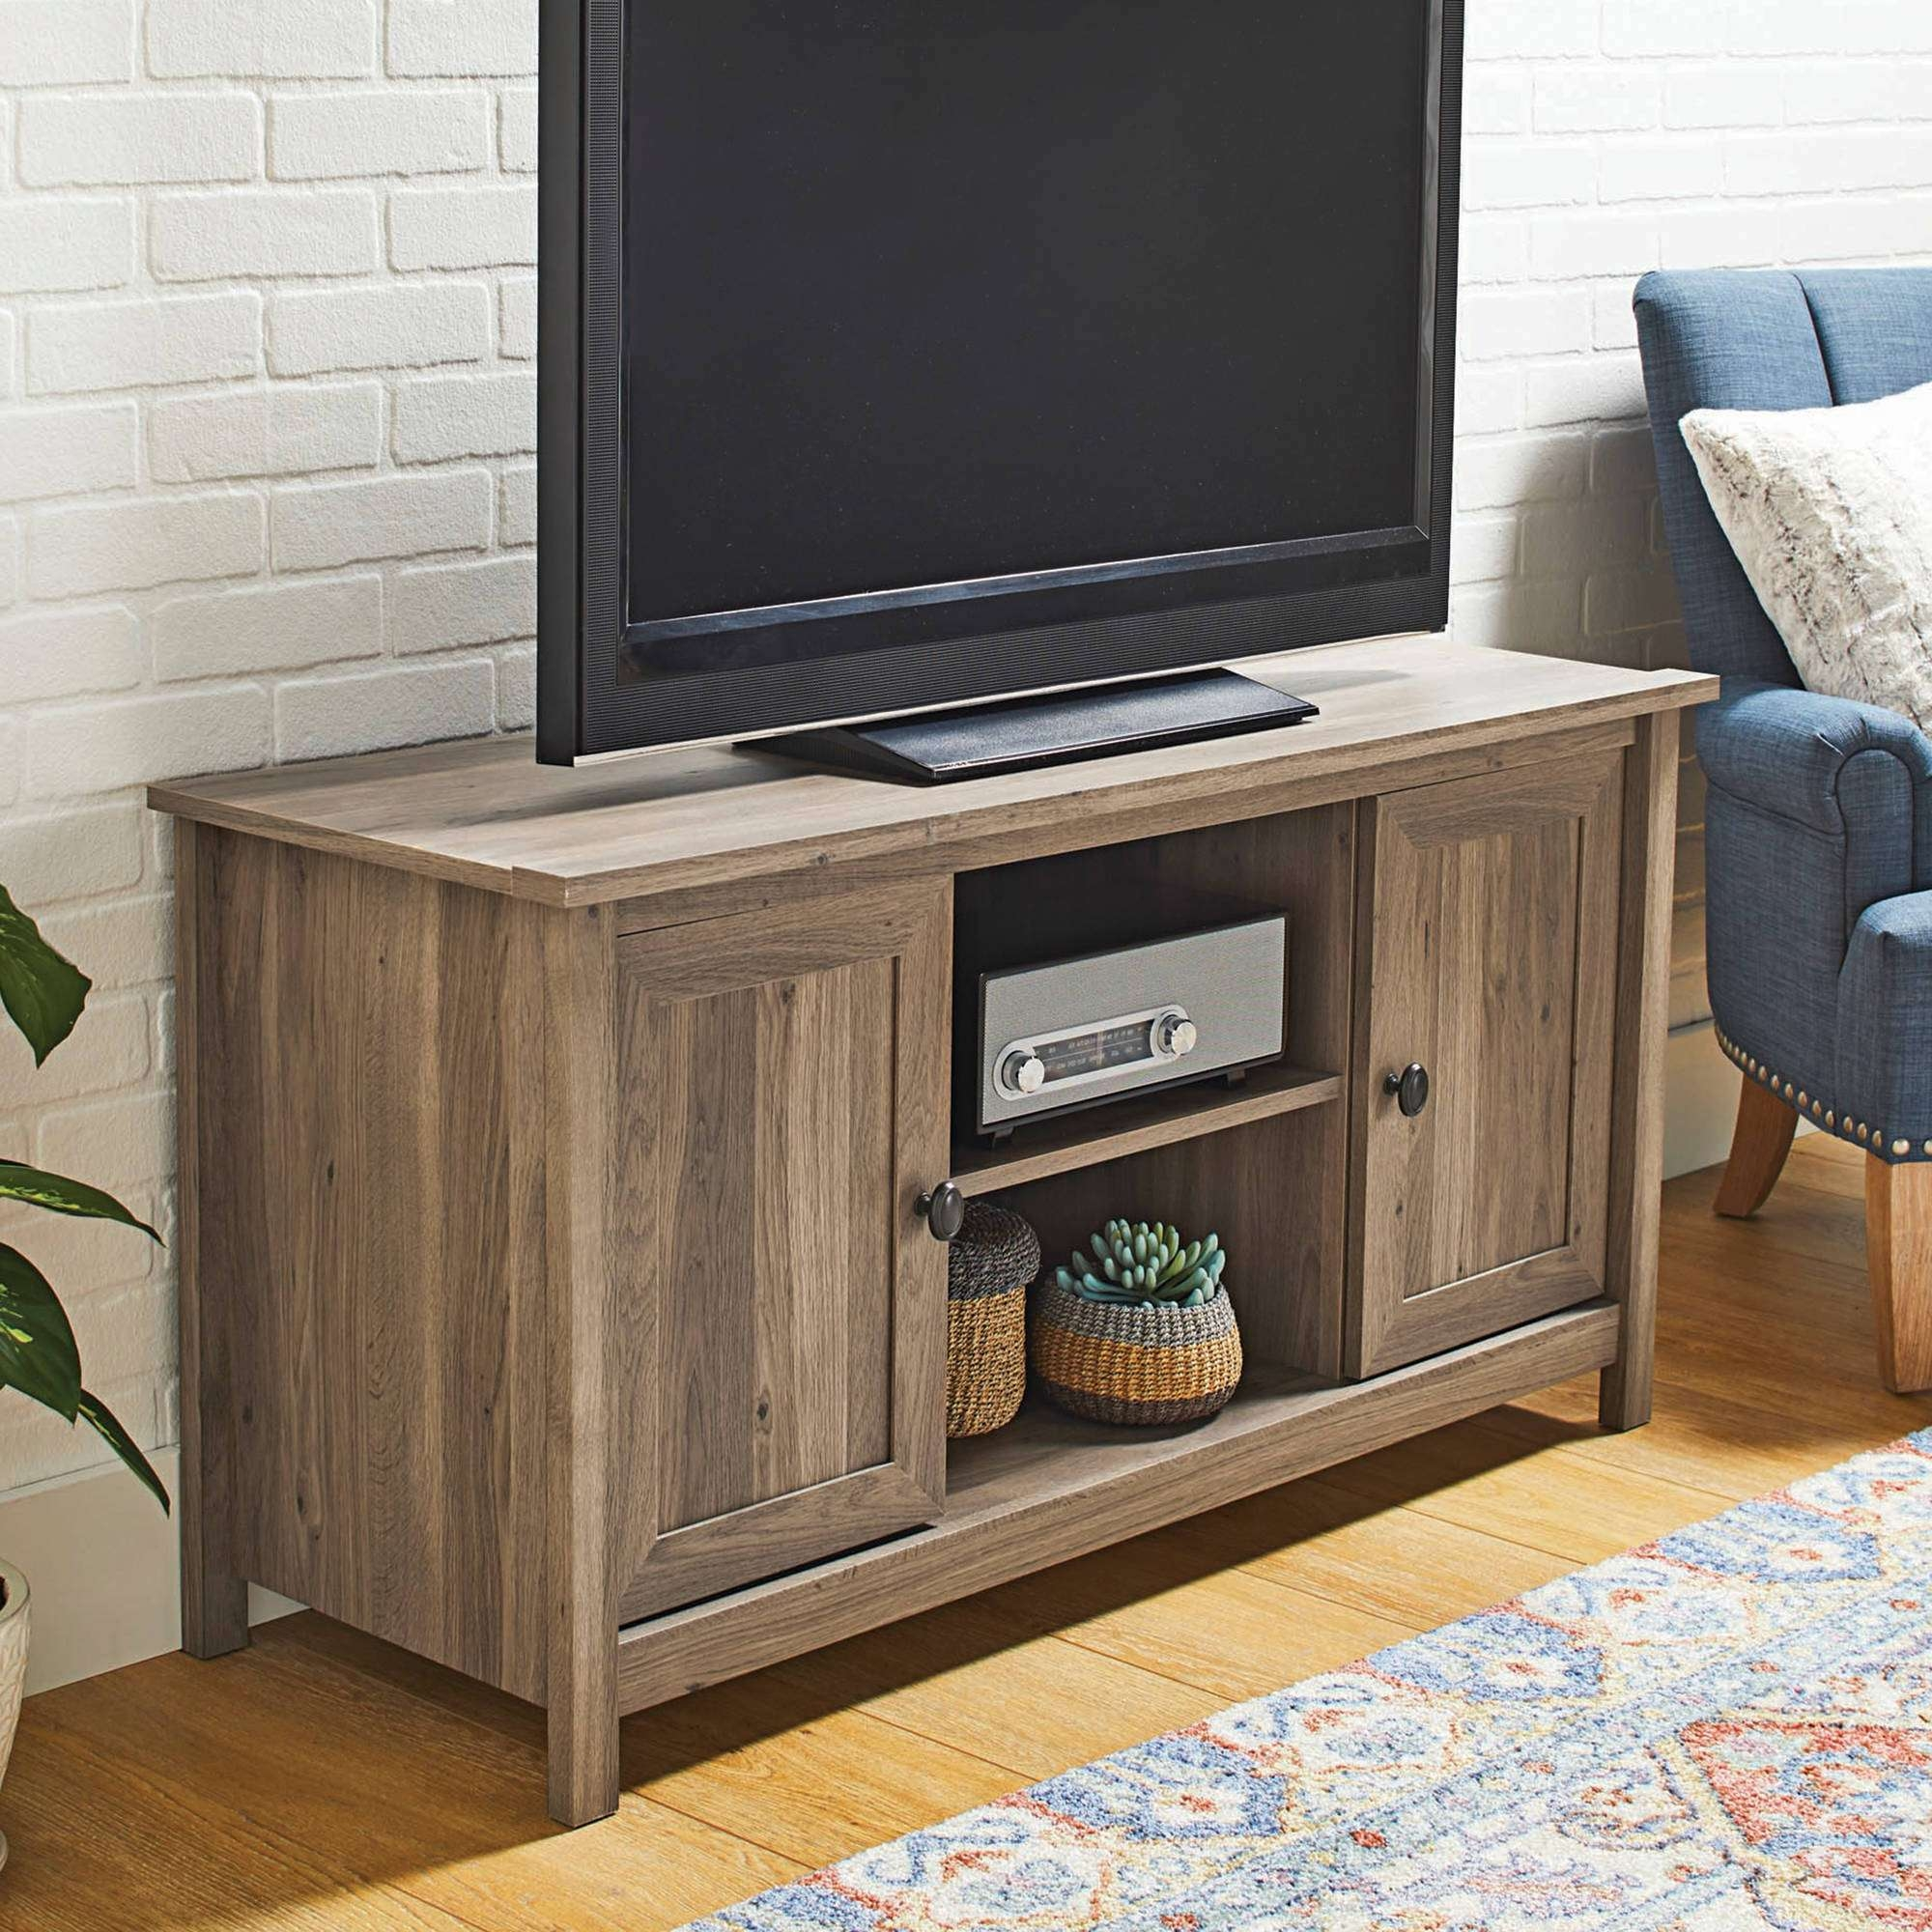 Tv : Amazing Maple Tv Stands Adrian Gray Maple Tv Stand For Tvs Up In Maple Tv Stands (View 17 of 20)